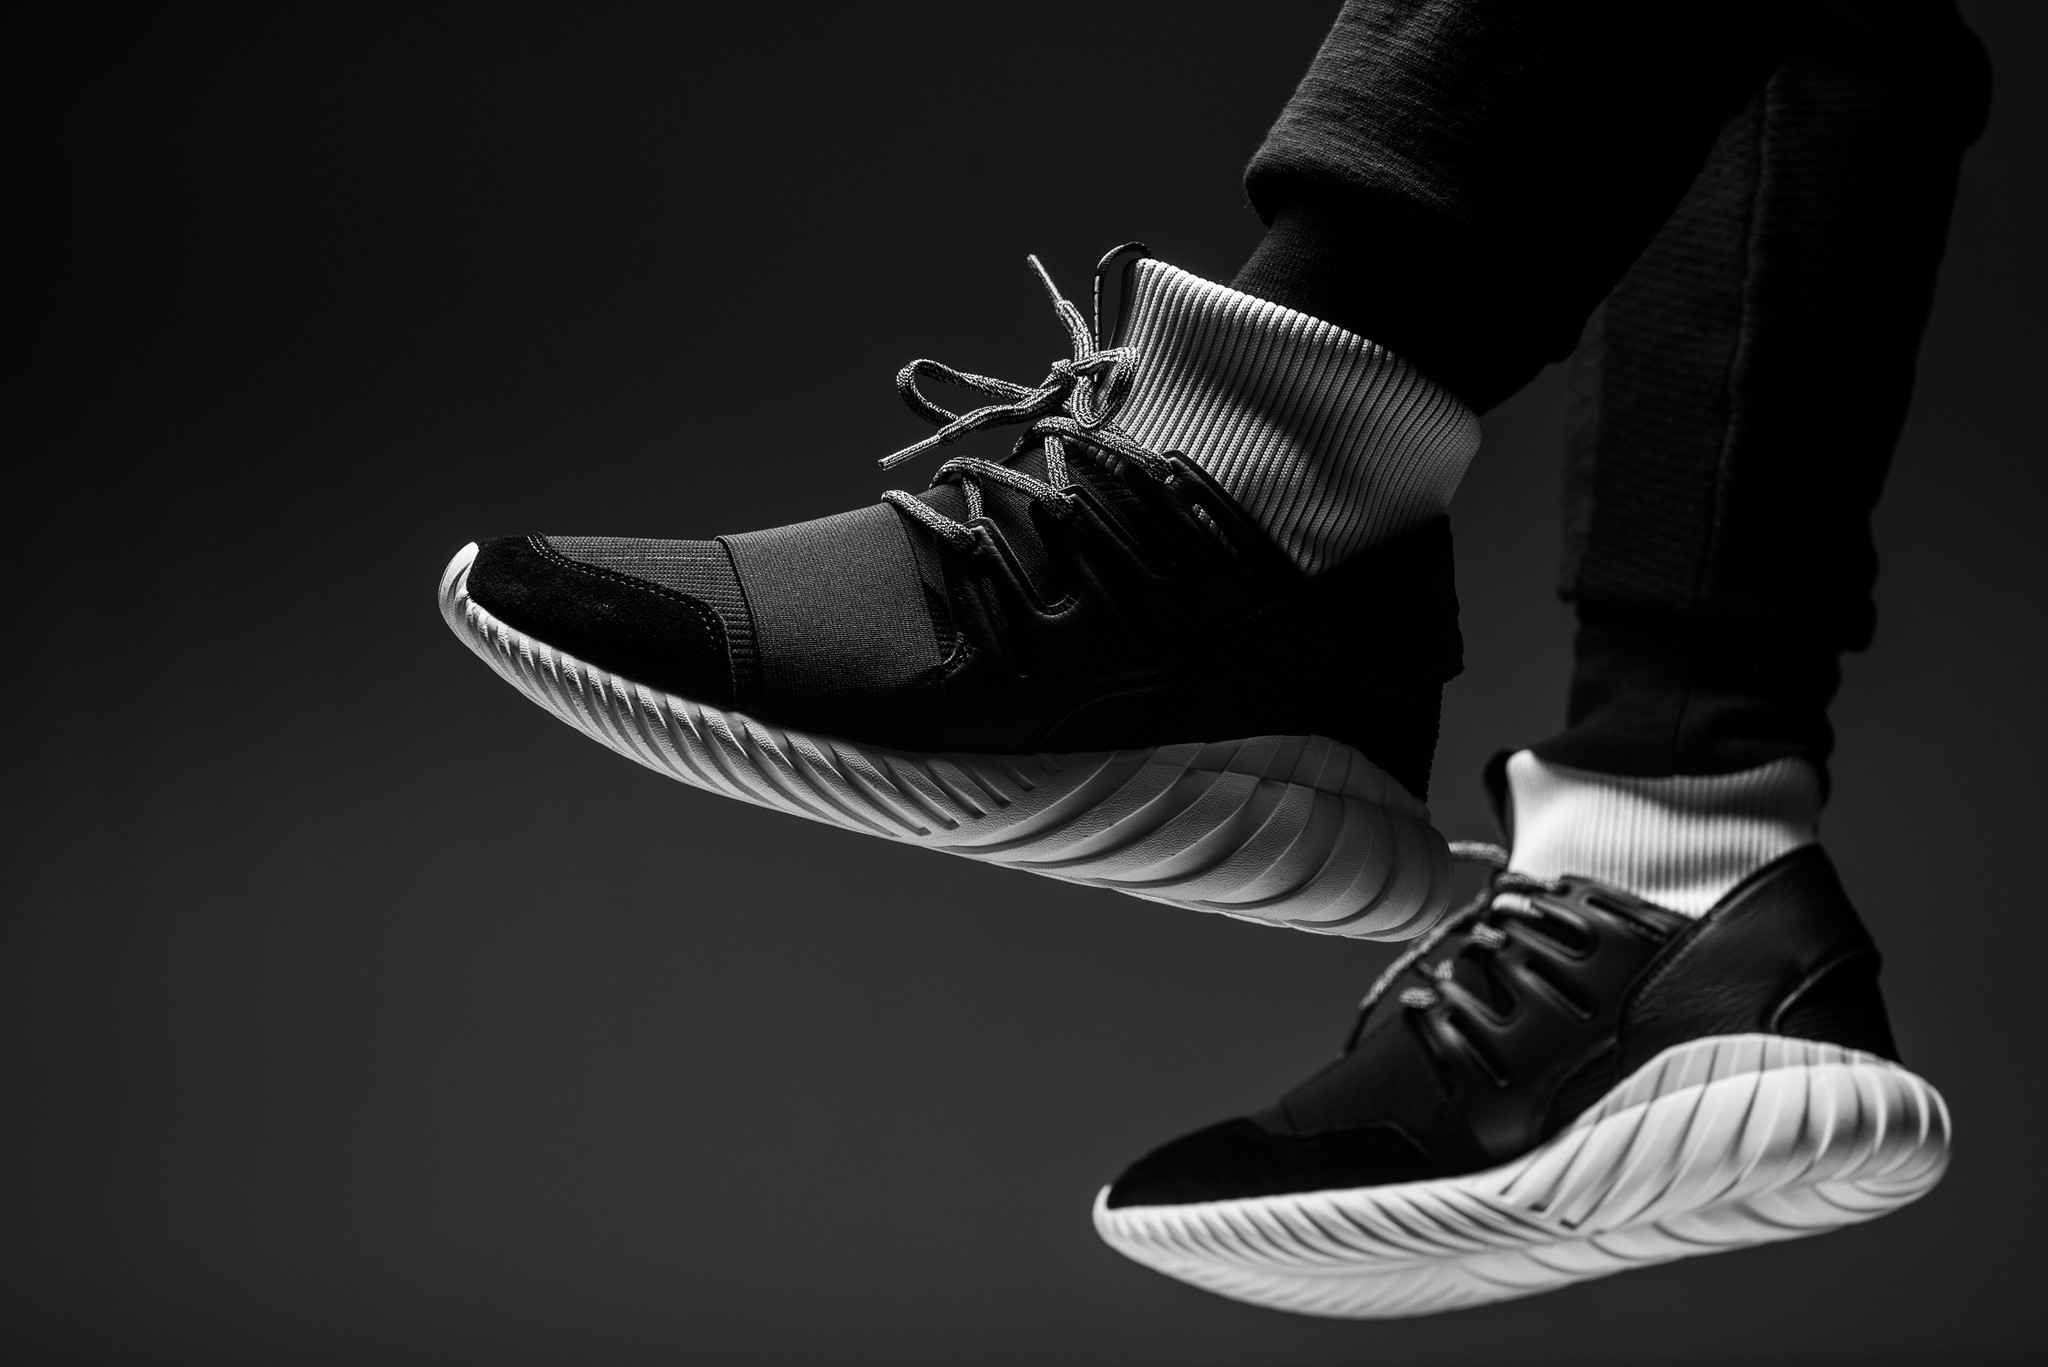 """outlet store 0145f e285d Bearing dueling white and black colorways, the adidas Tubular Doom """"Yin Yang""""  pack"""